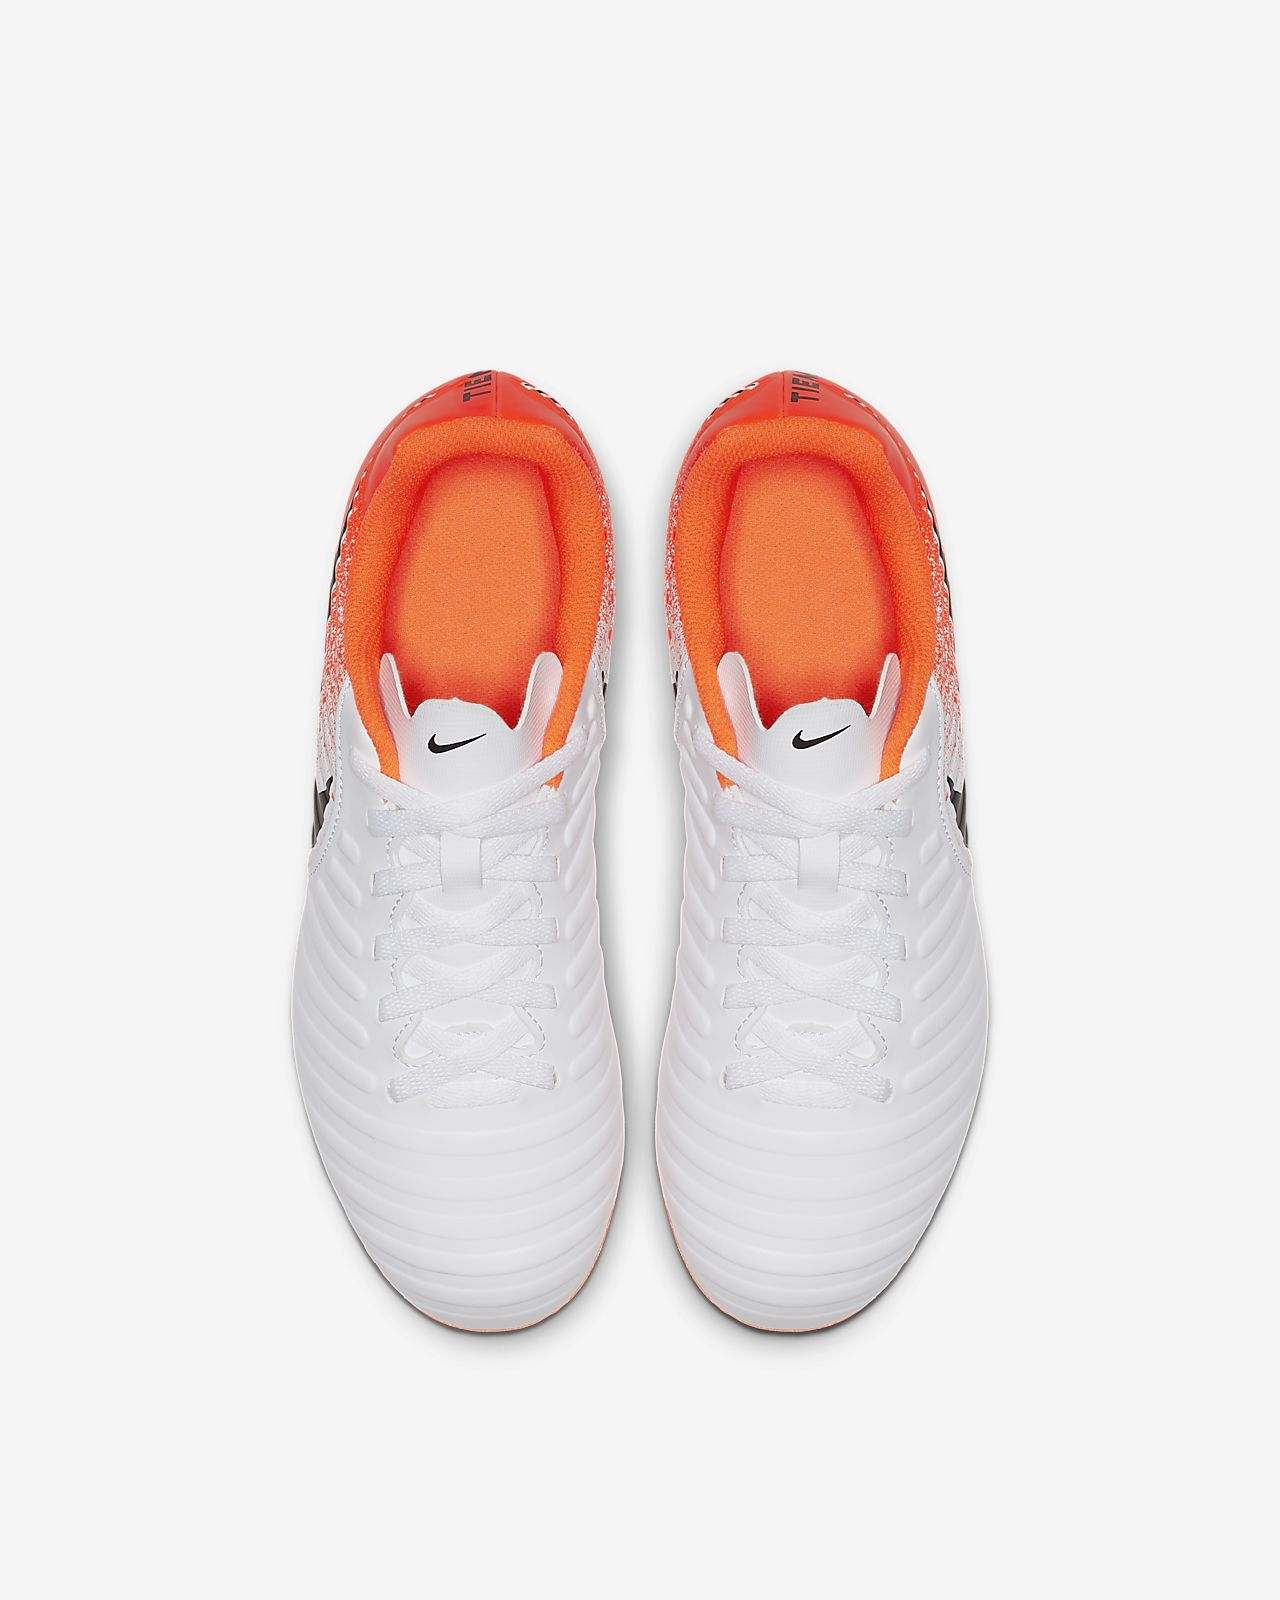 a1555f003 ... Nike Jr. Tiempo Legend VII Club Toddler/Younger Kids' Firm-Ground  Football